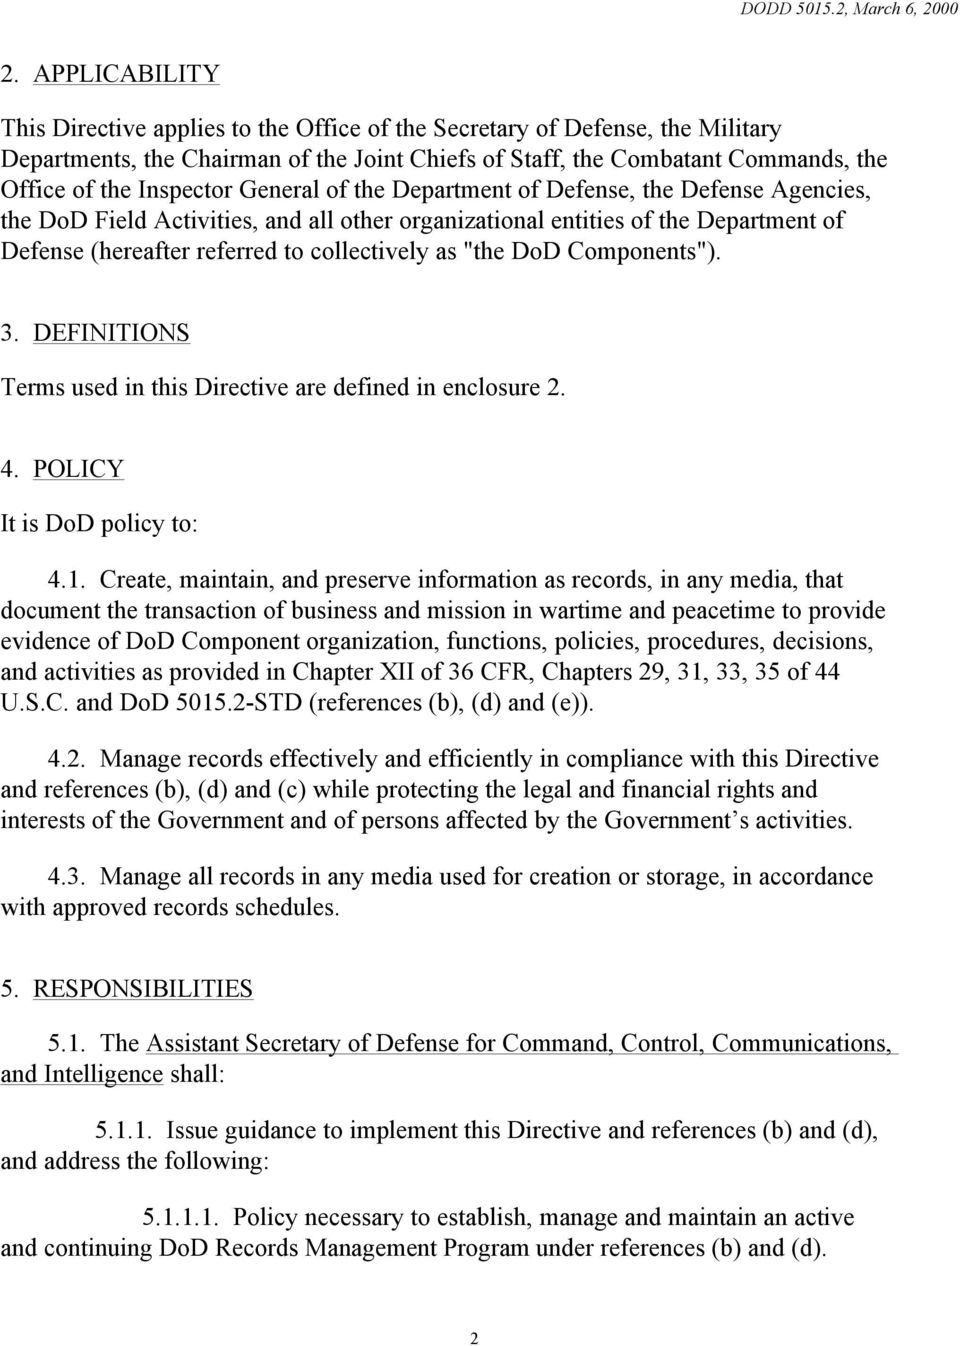 "as ""the DoD Components""). 3. DEFINITIONS Terms used in this Directive are defined in enclosure 2. 4. POLICY It is DoD policy to: 4.1."